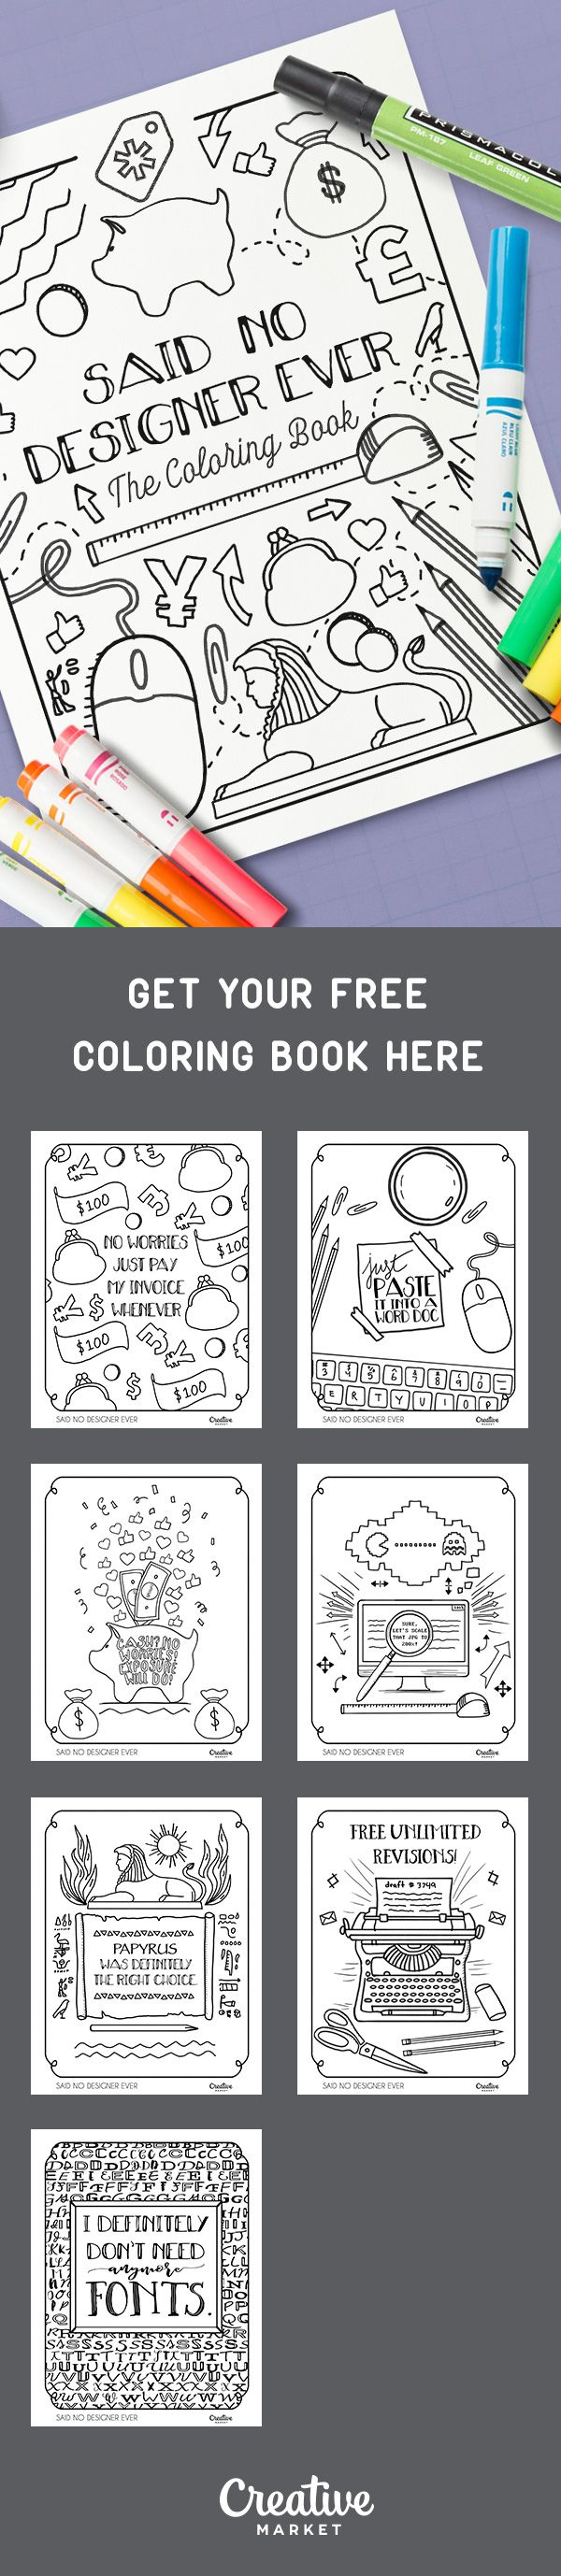 On the Creative Market Blog - Free printable Coloring Book for designer